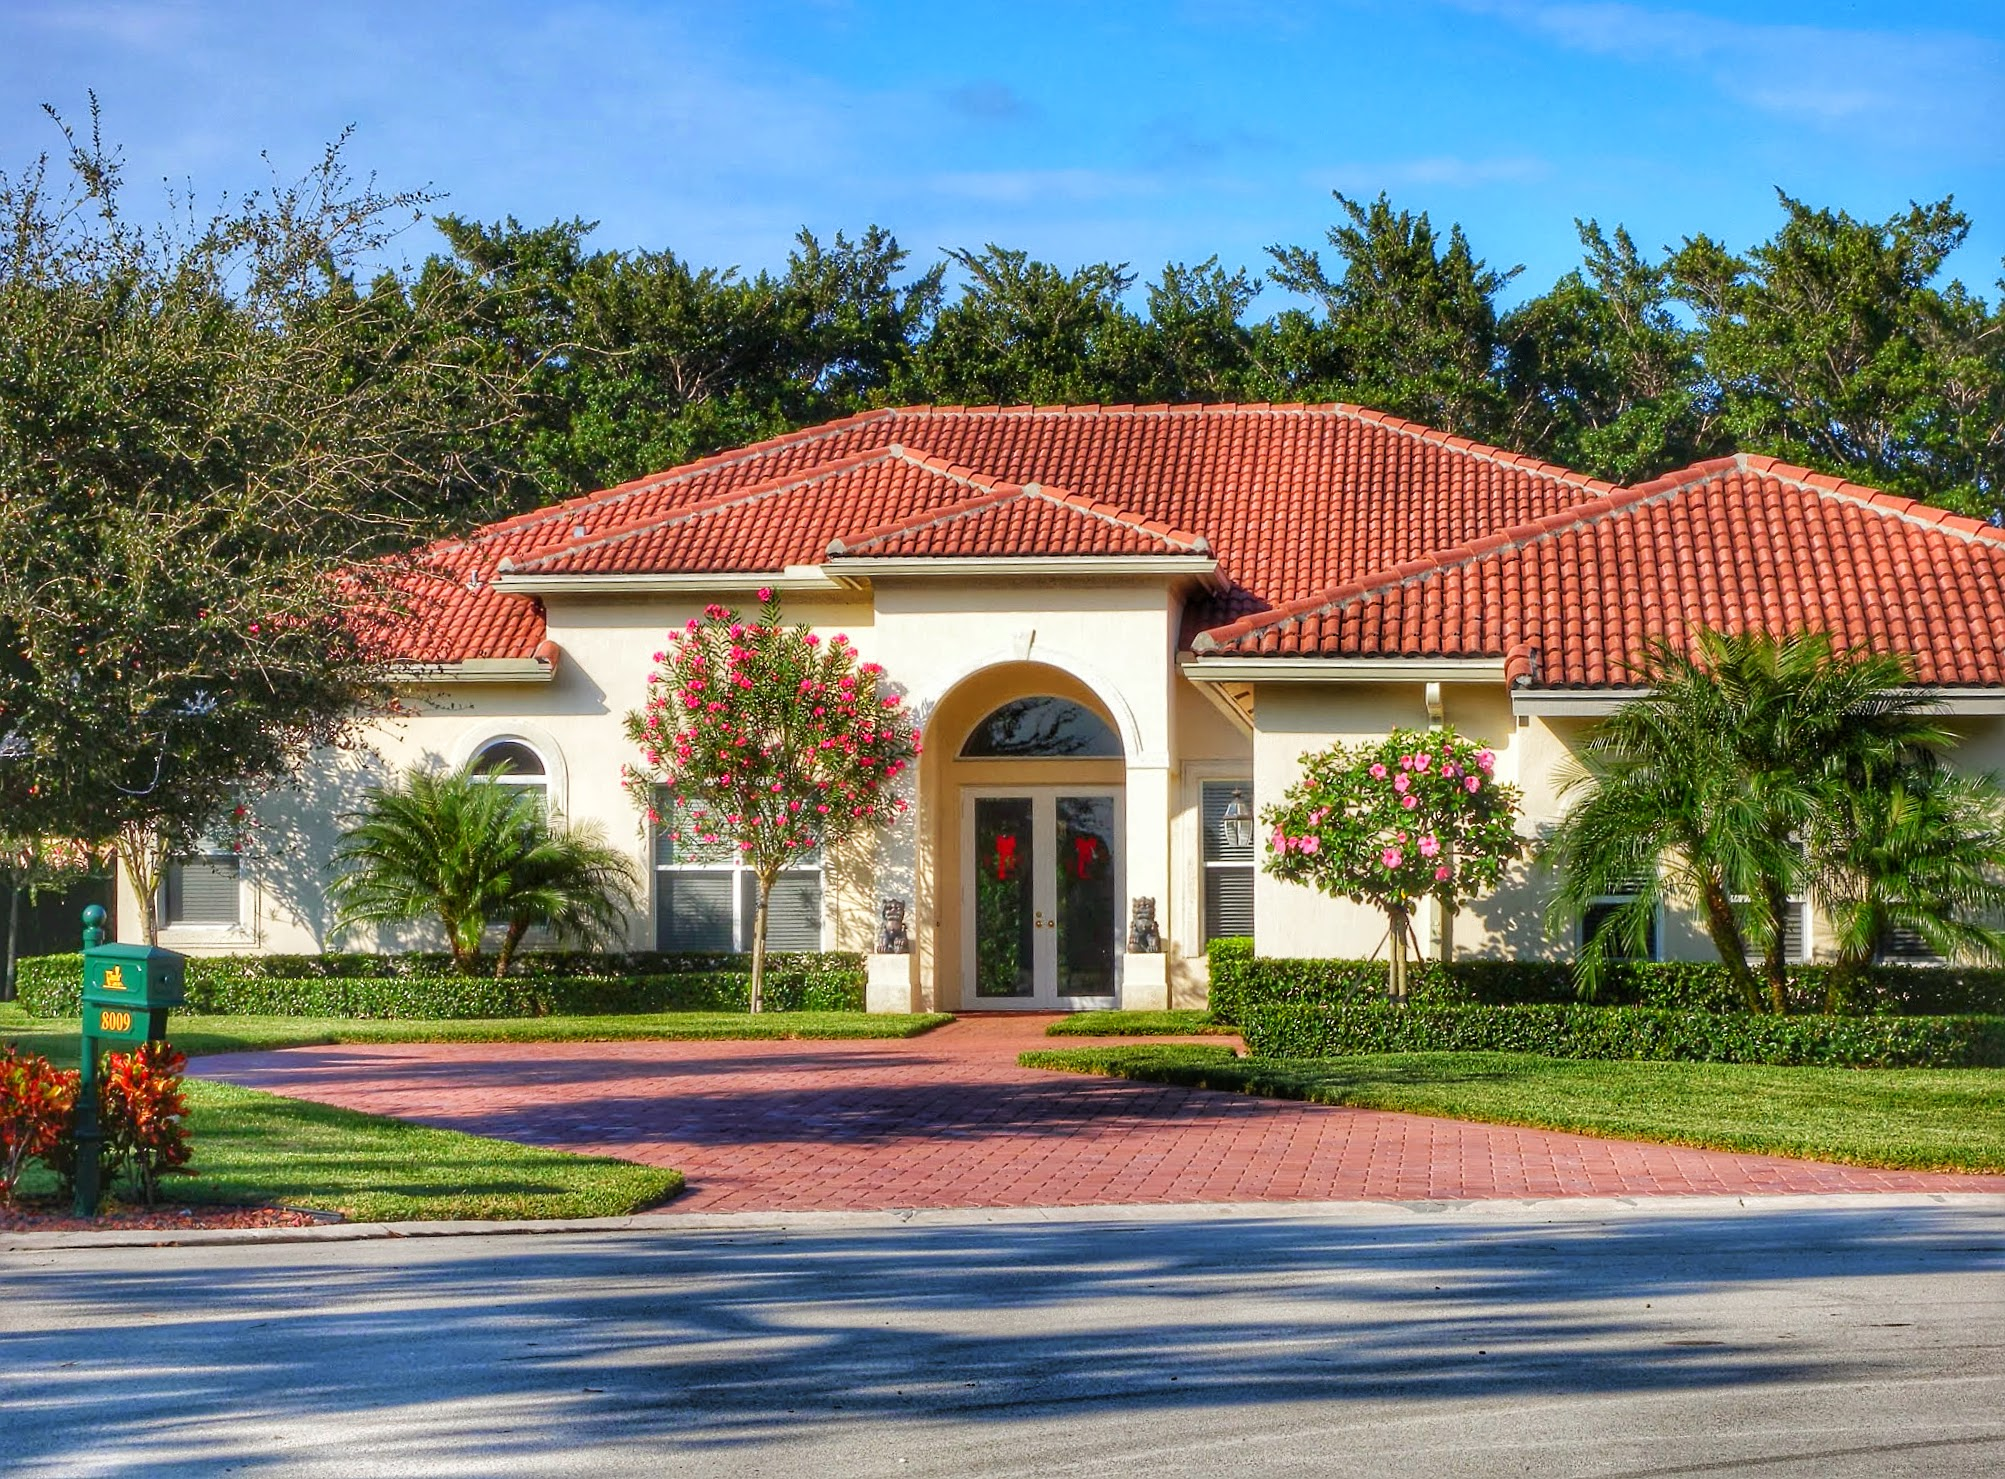 Homes for sale in Madison Green Royal Palm Beach - Florida IPI International Properties and Investments